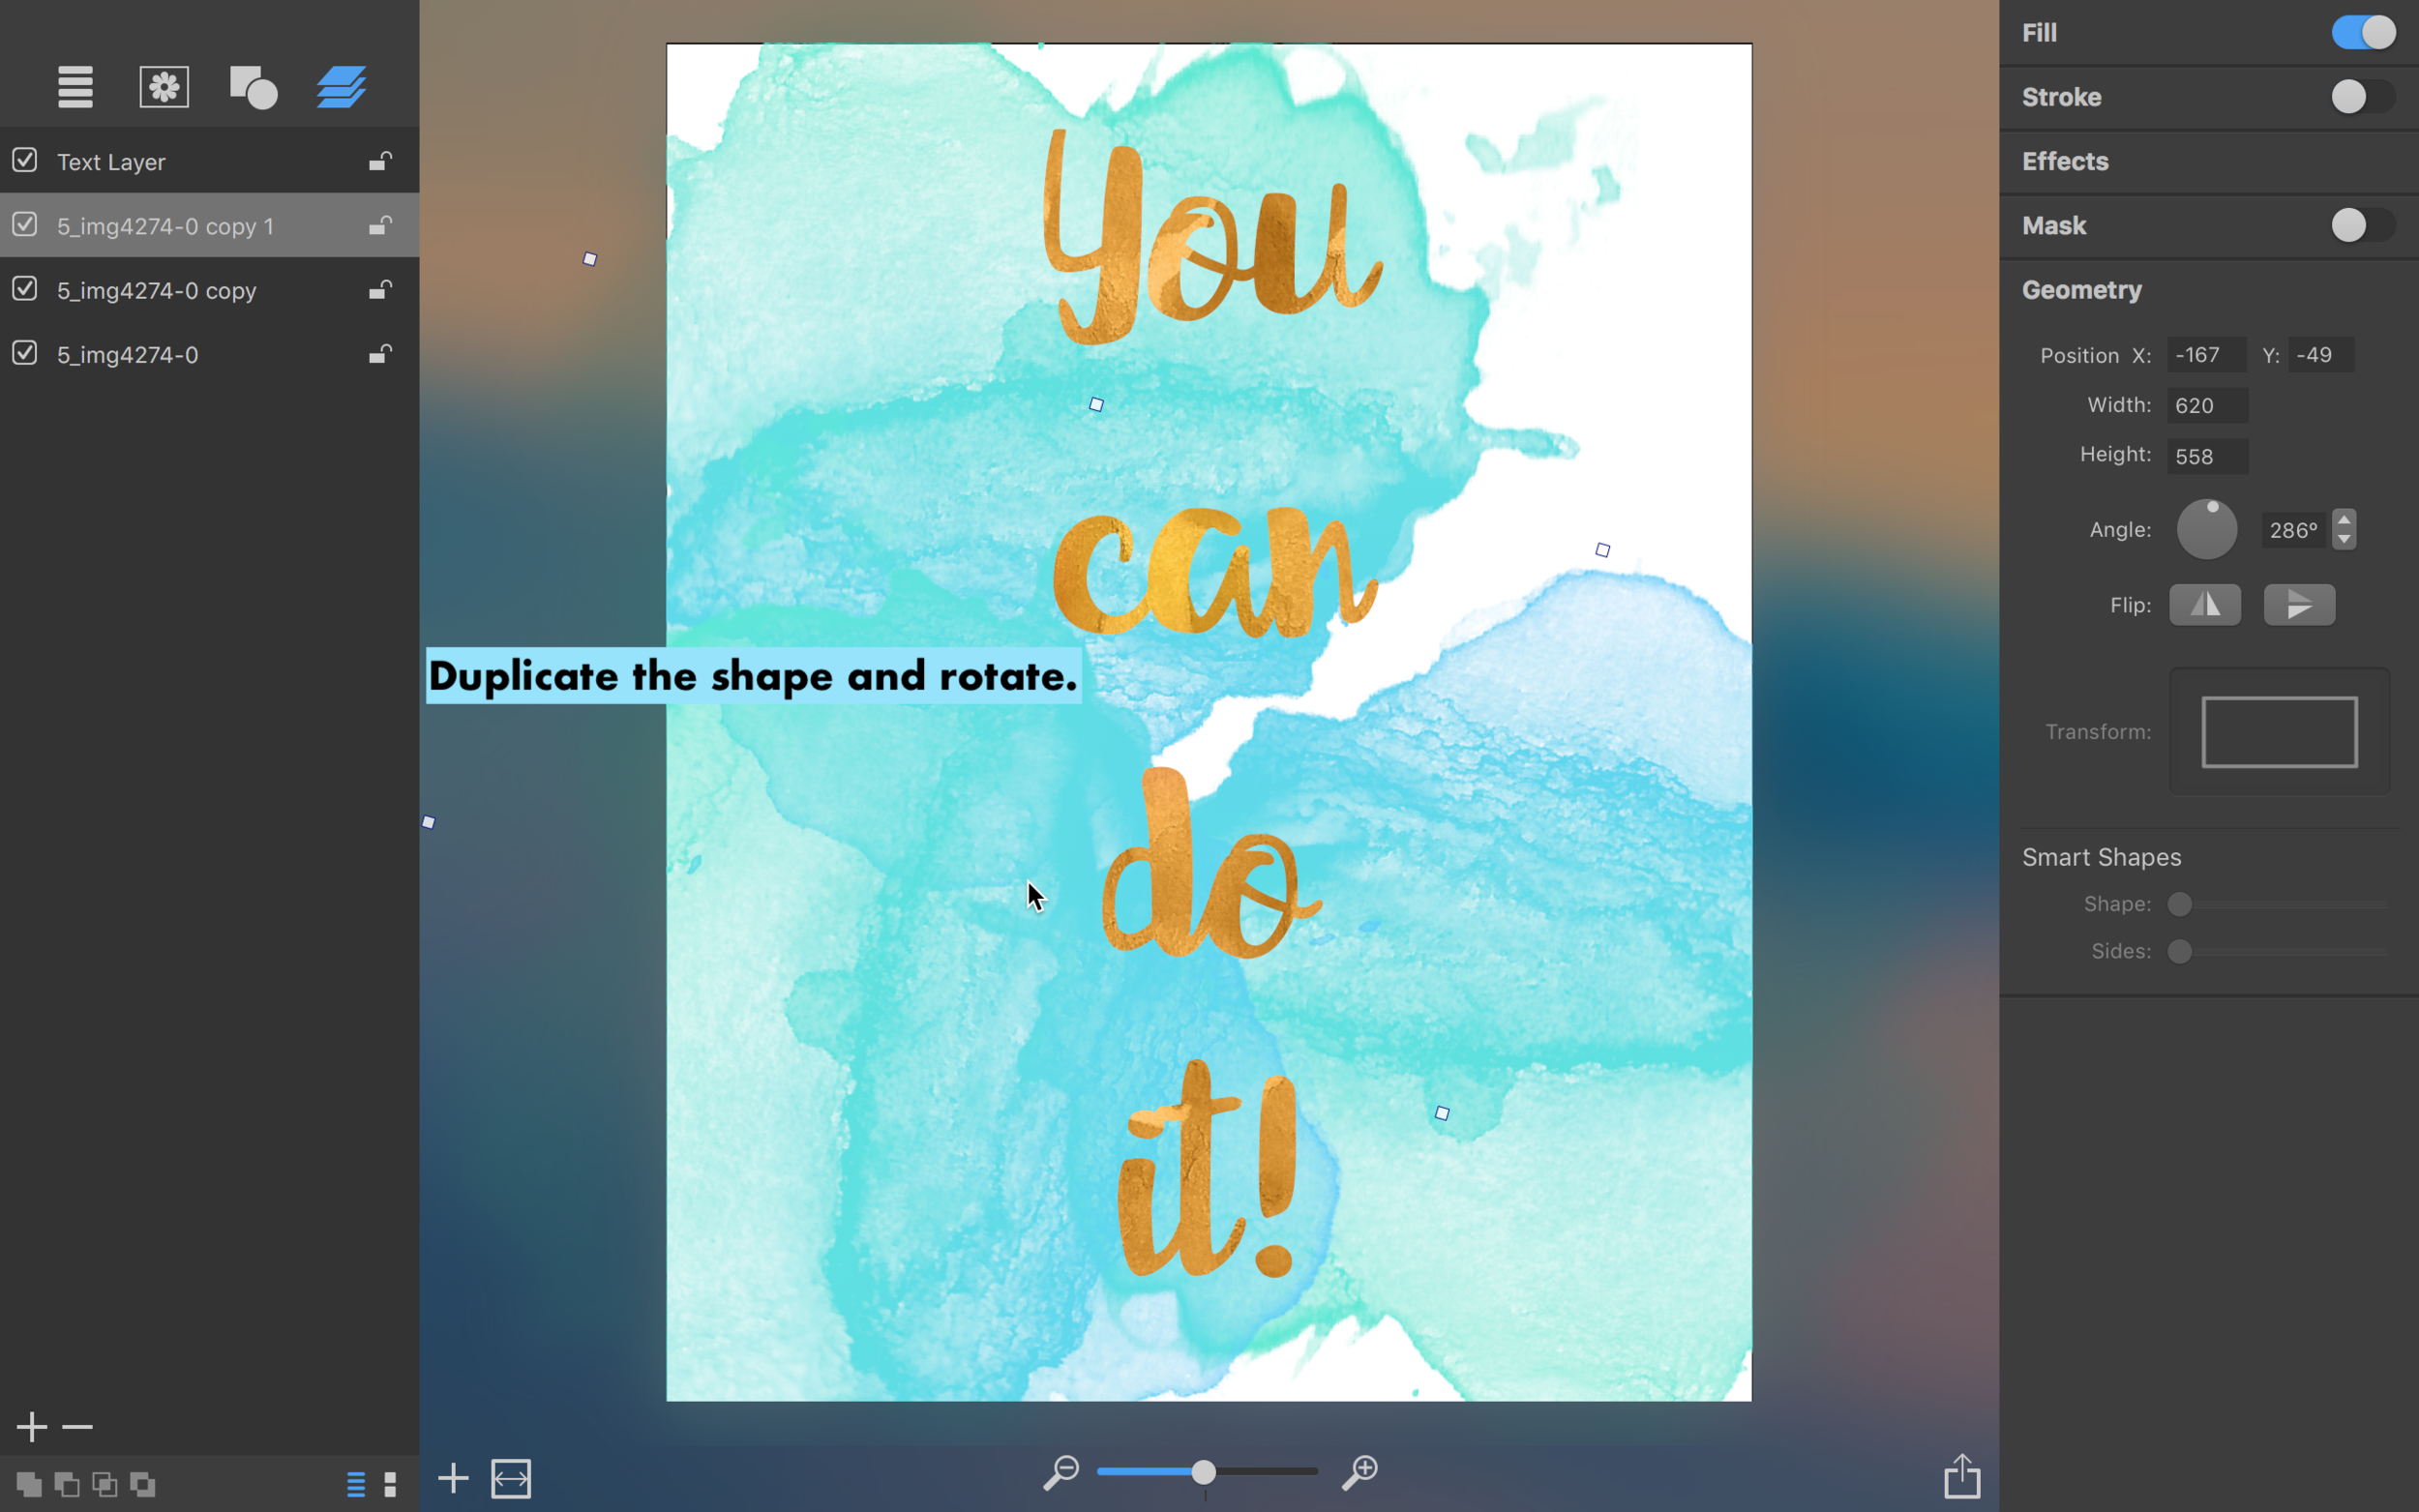 art-text-app-15th-step.png